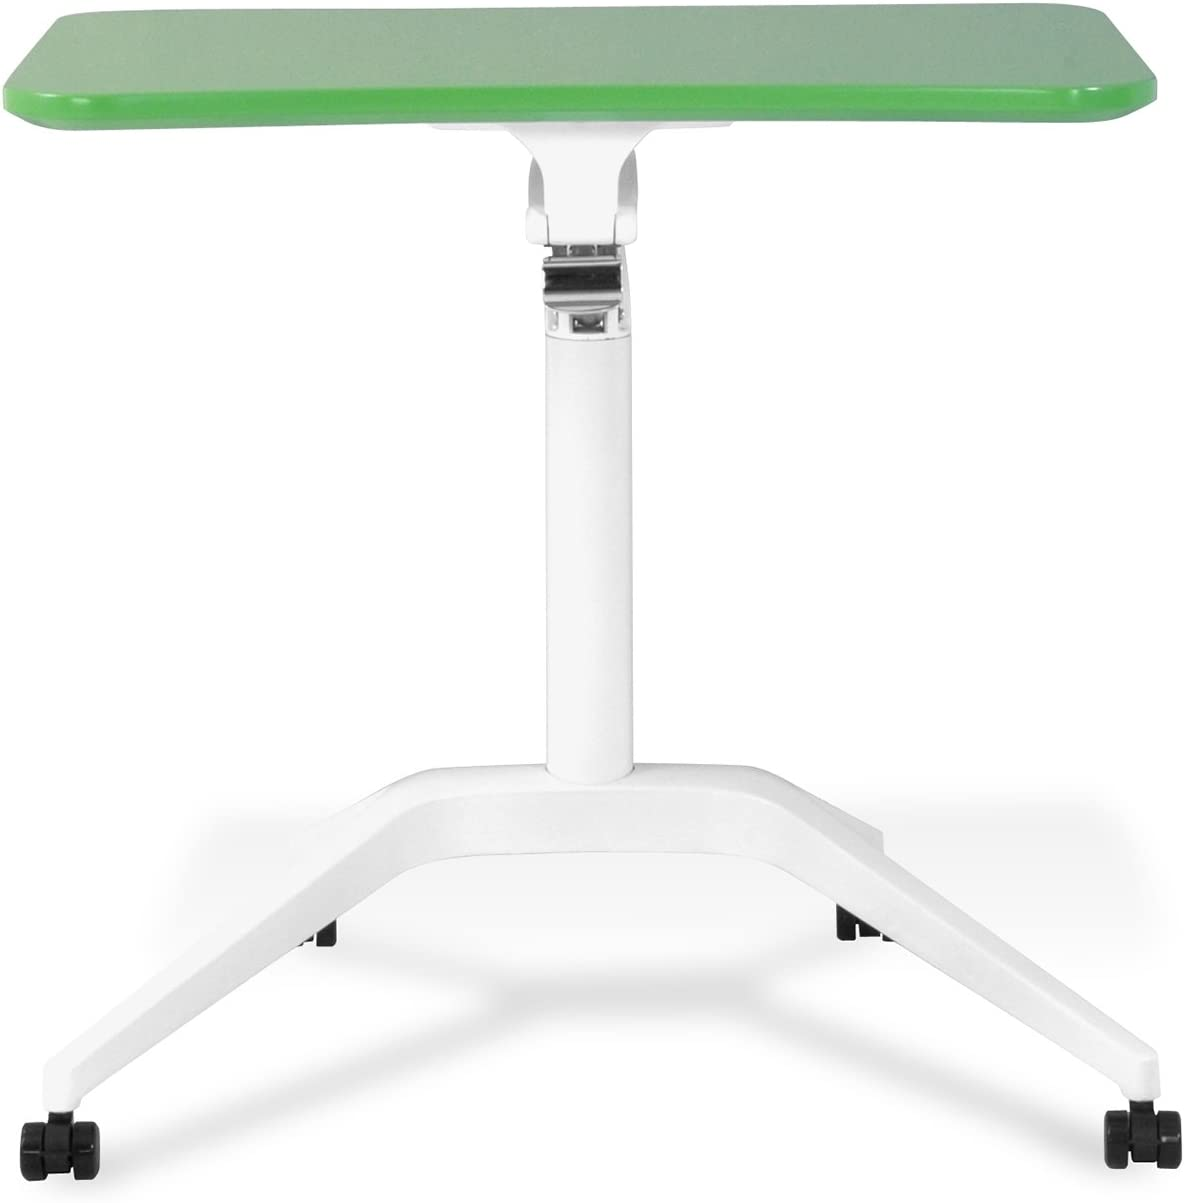 Unique Furniture Workpad Height Adjustable Laptop Cart Mobile Desk, with Green Top